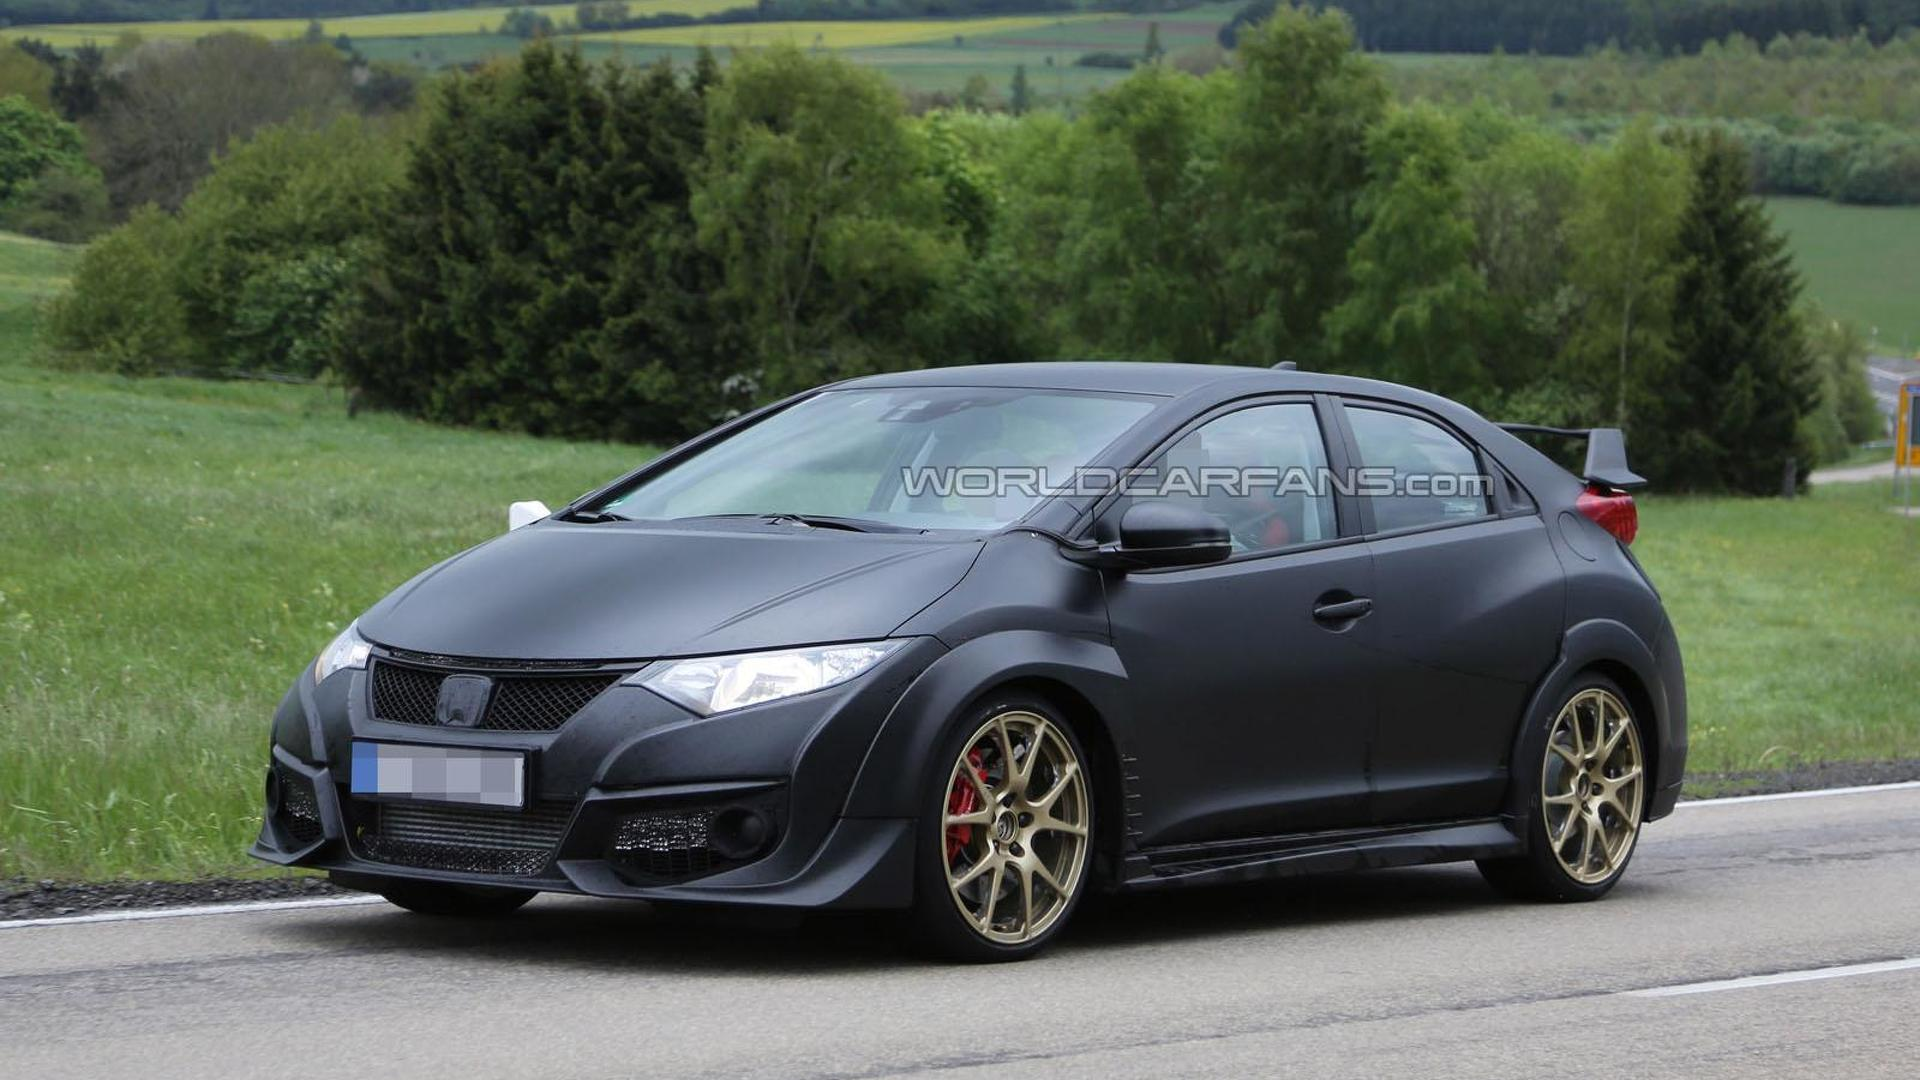 2015 Honda Civic Type-R spied completely undisguised